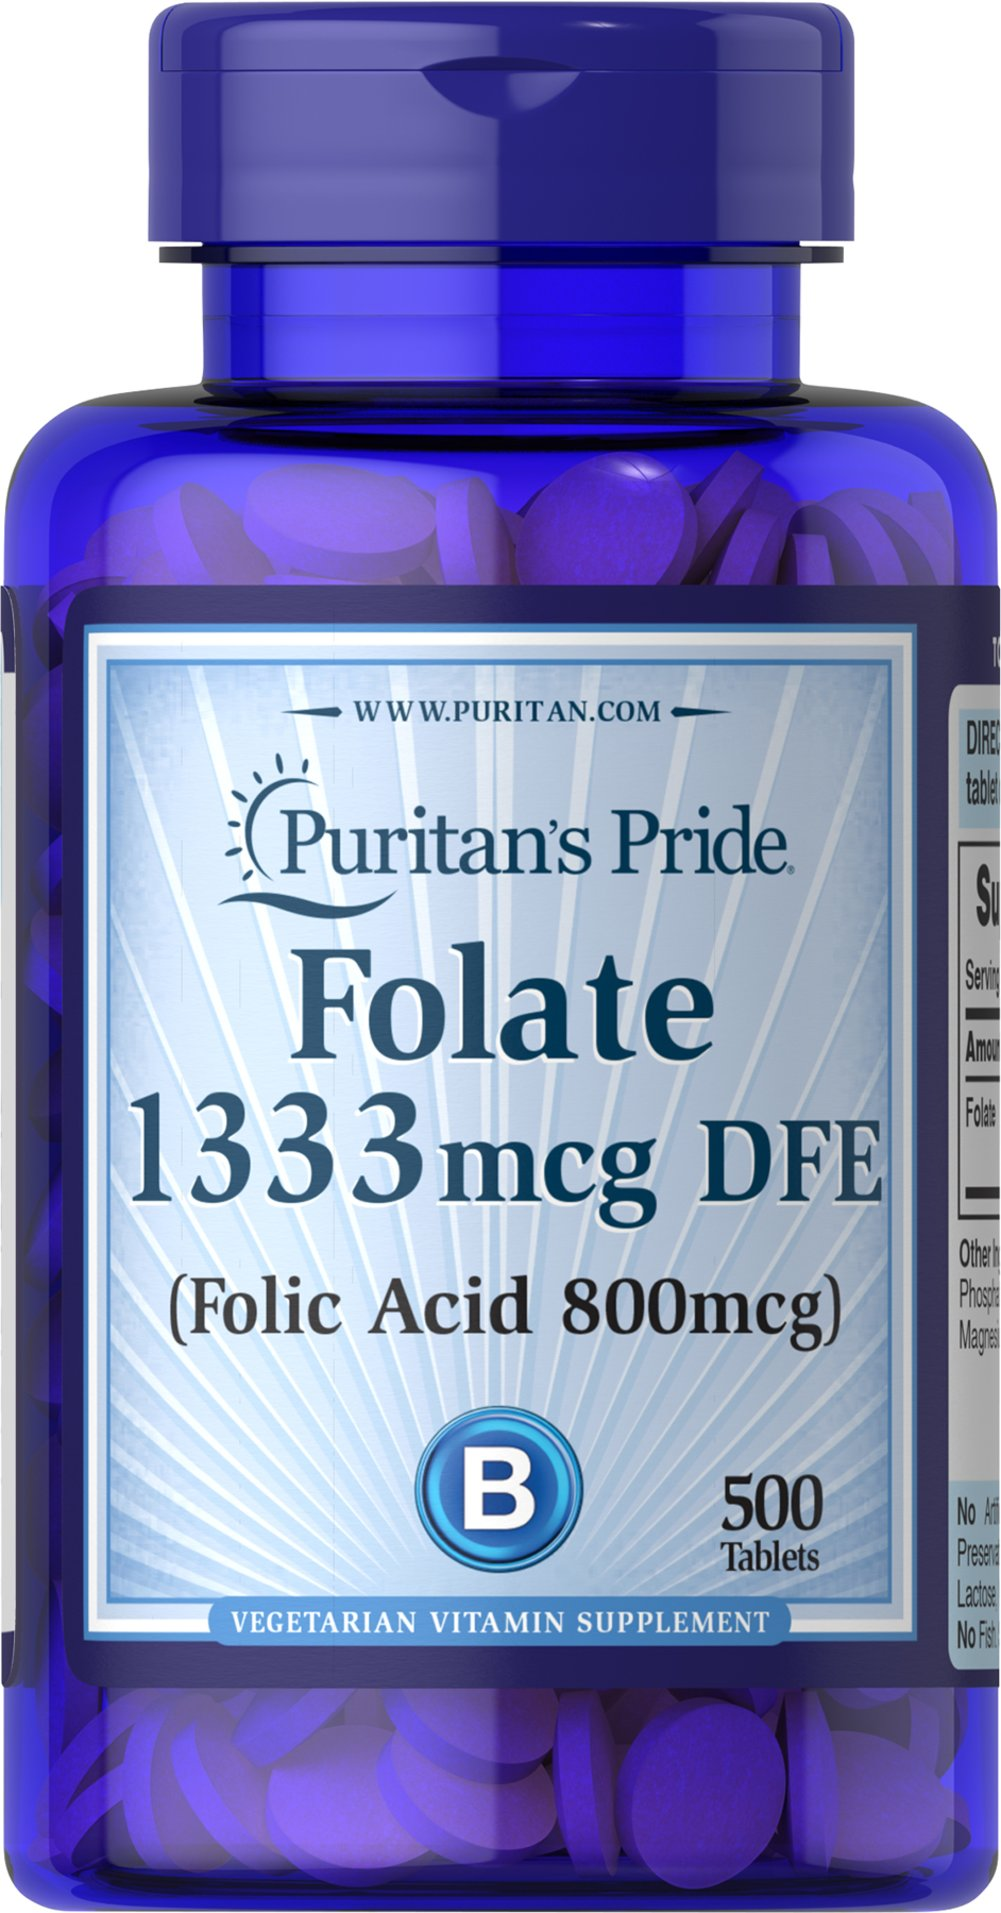 Folate 1333 mcg DFE Thumbnail Alternate Bottle View